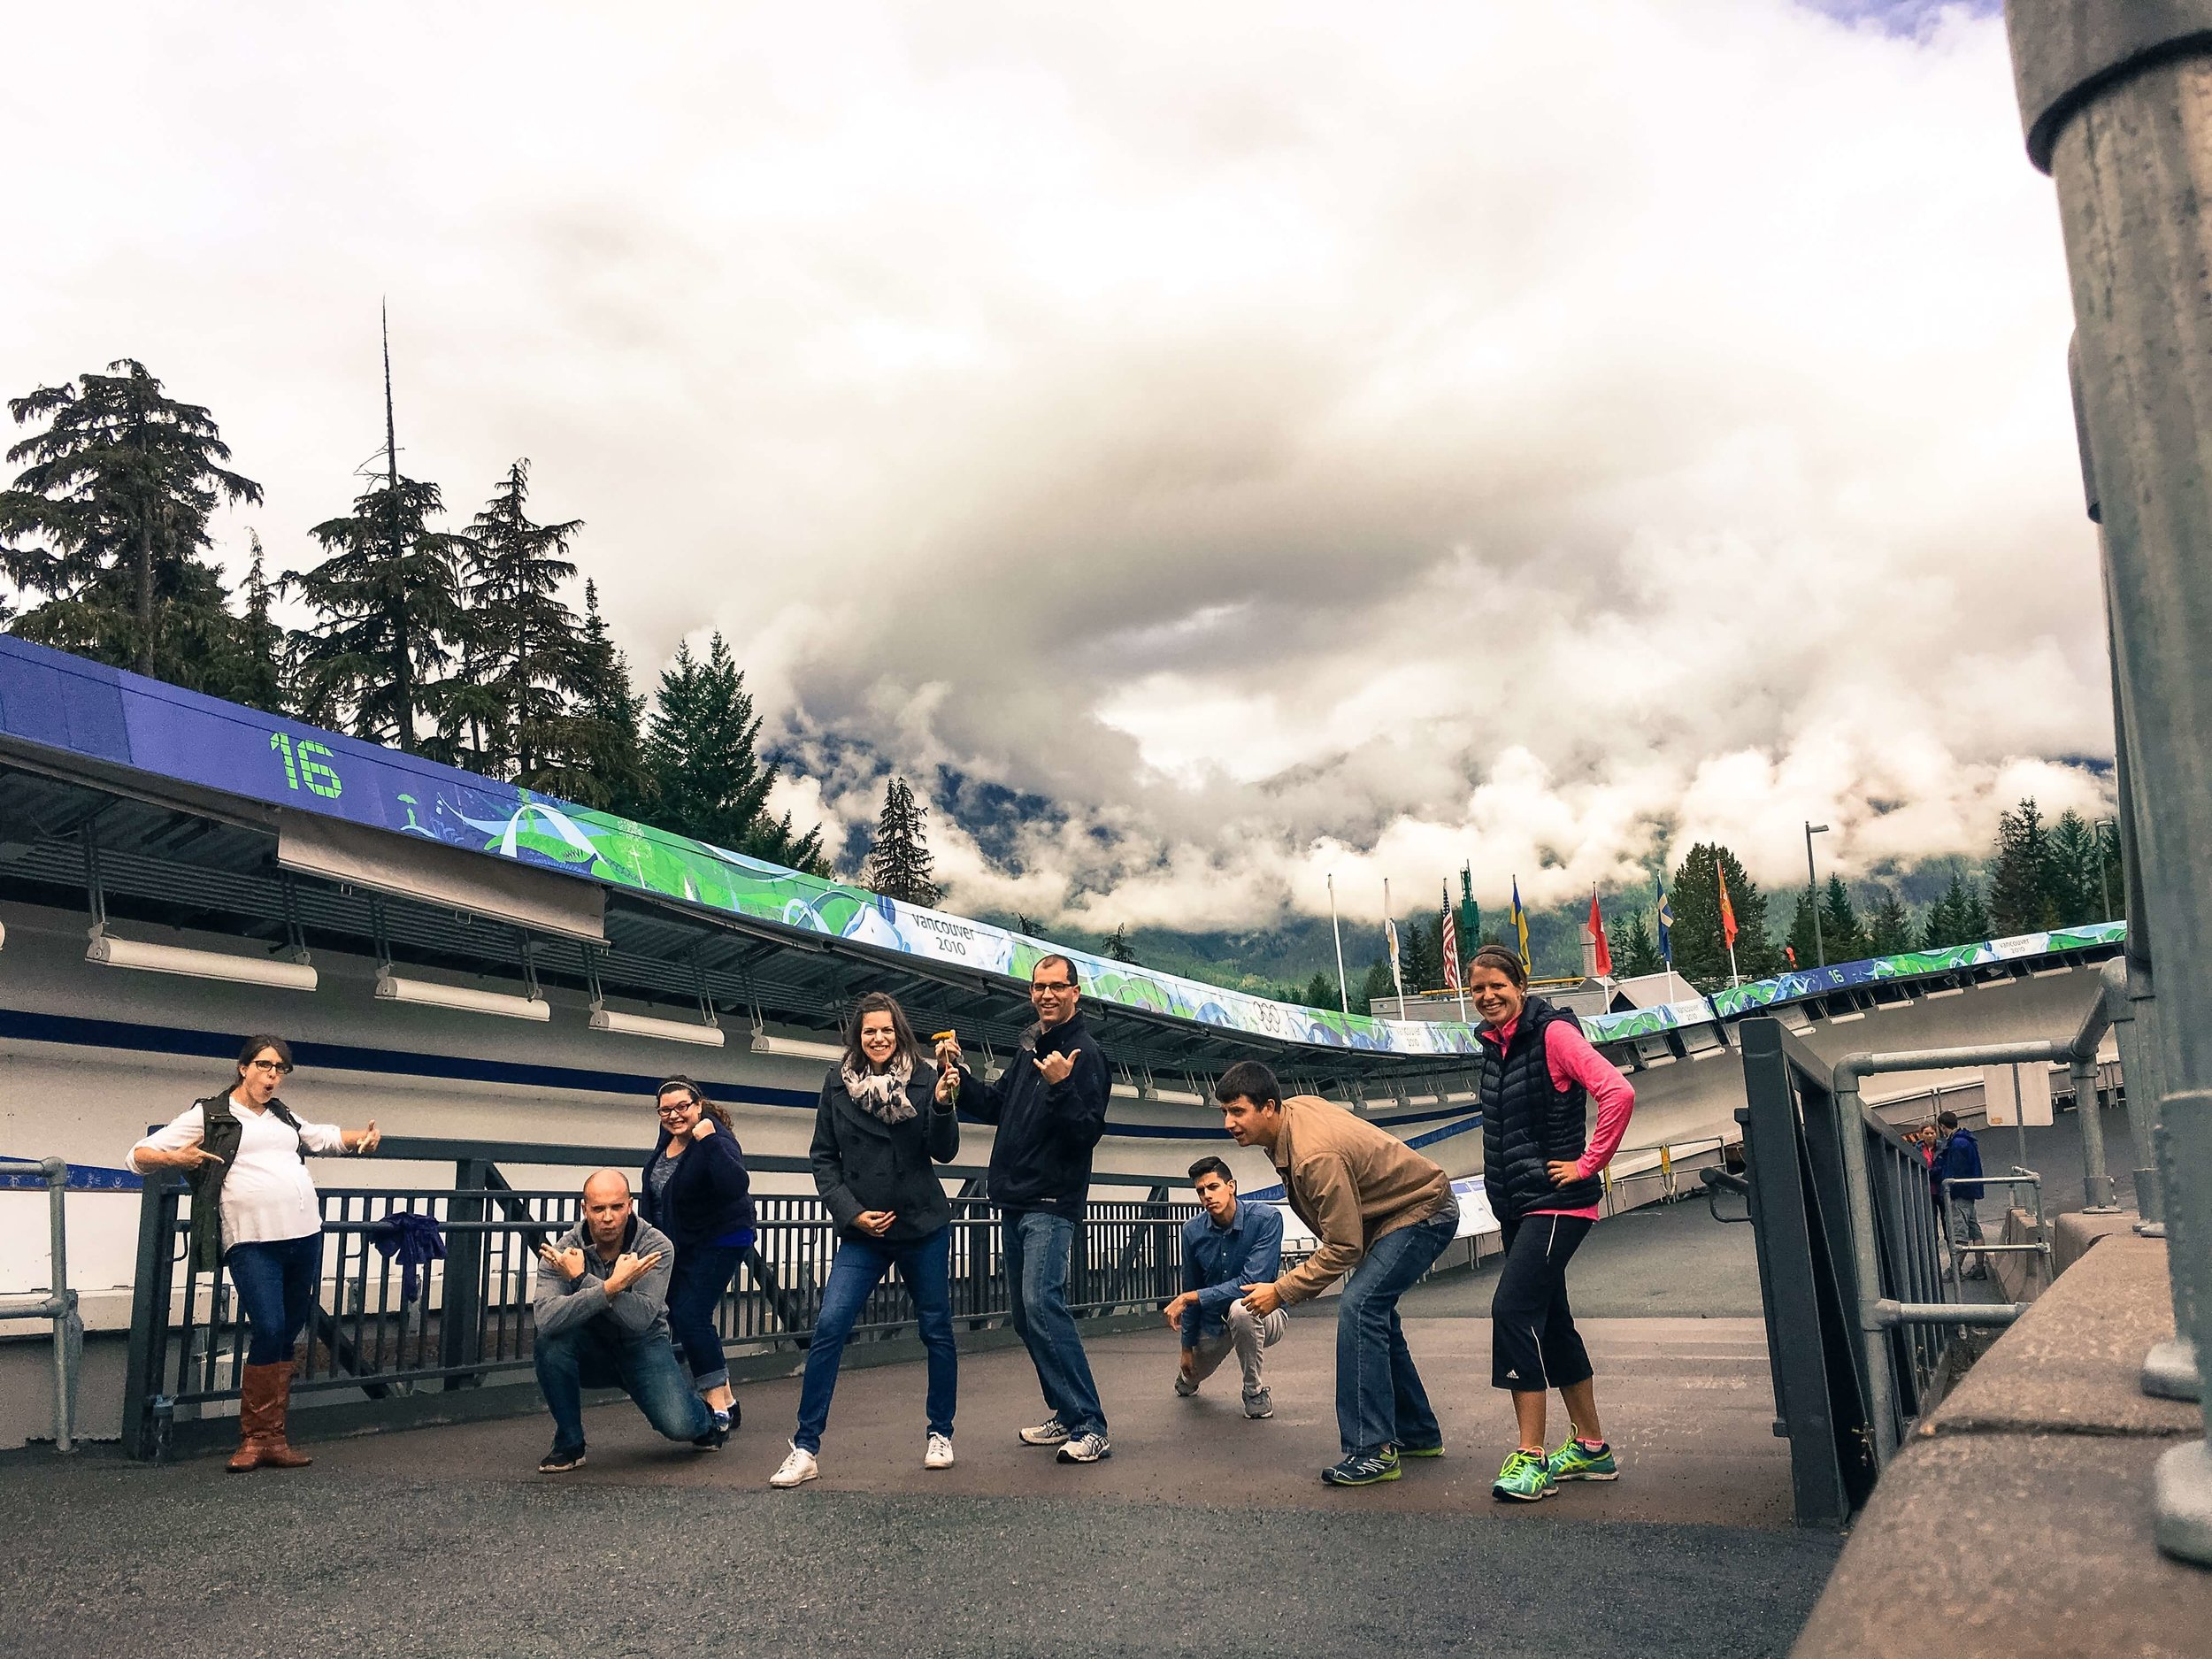 The Whistler Sliding Center in Canada, where the 2010 Winter Olympics were held.